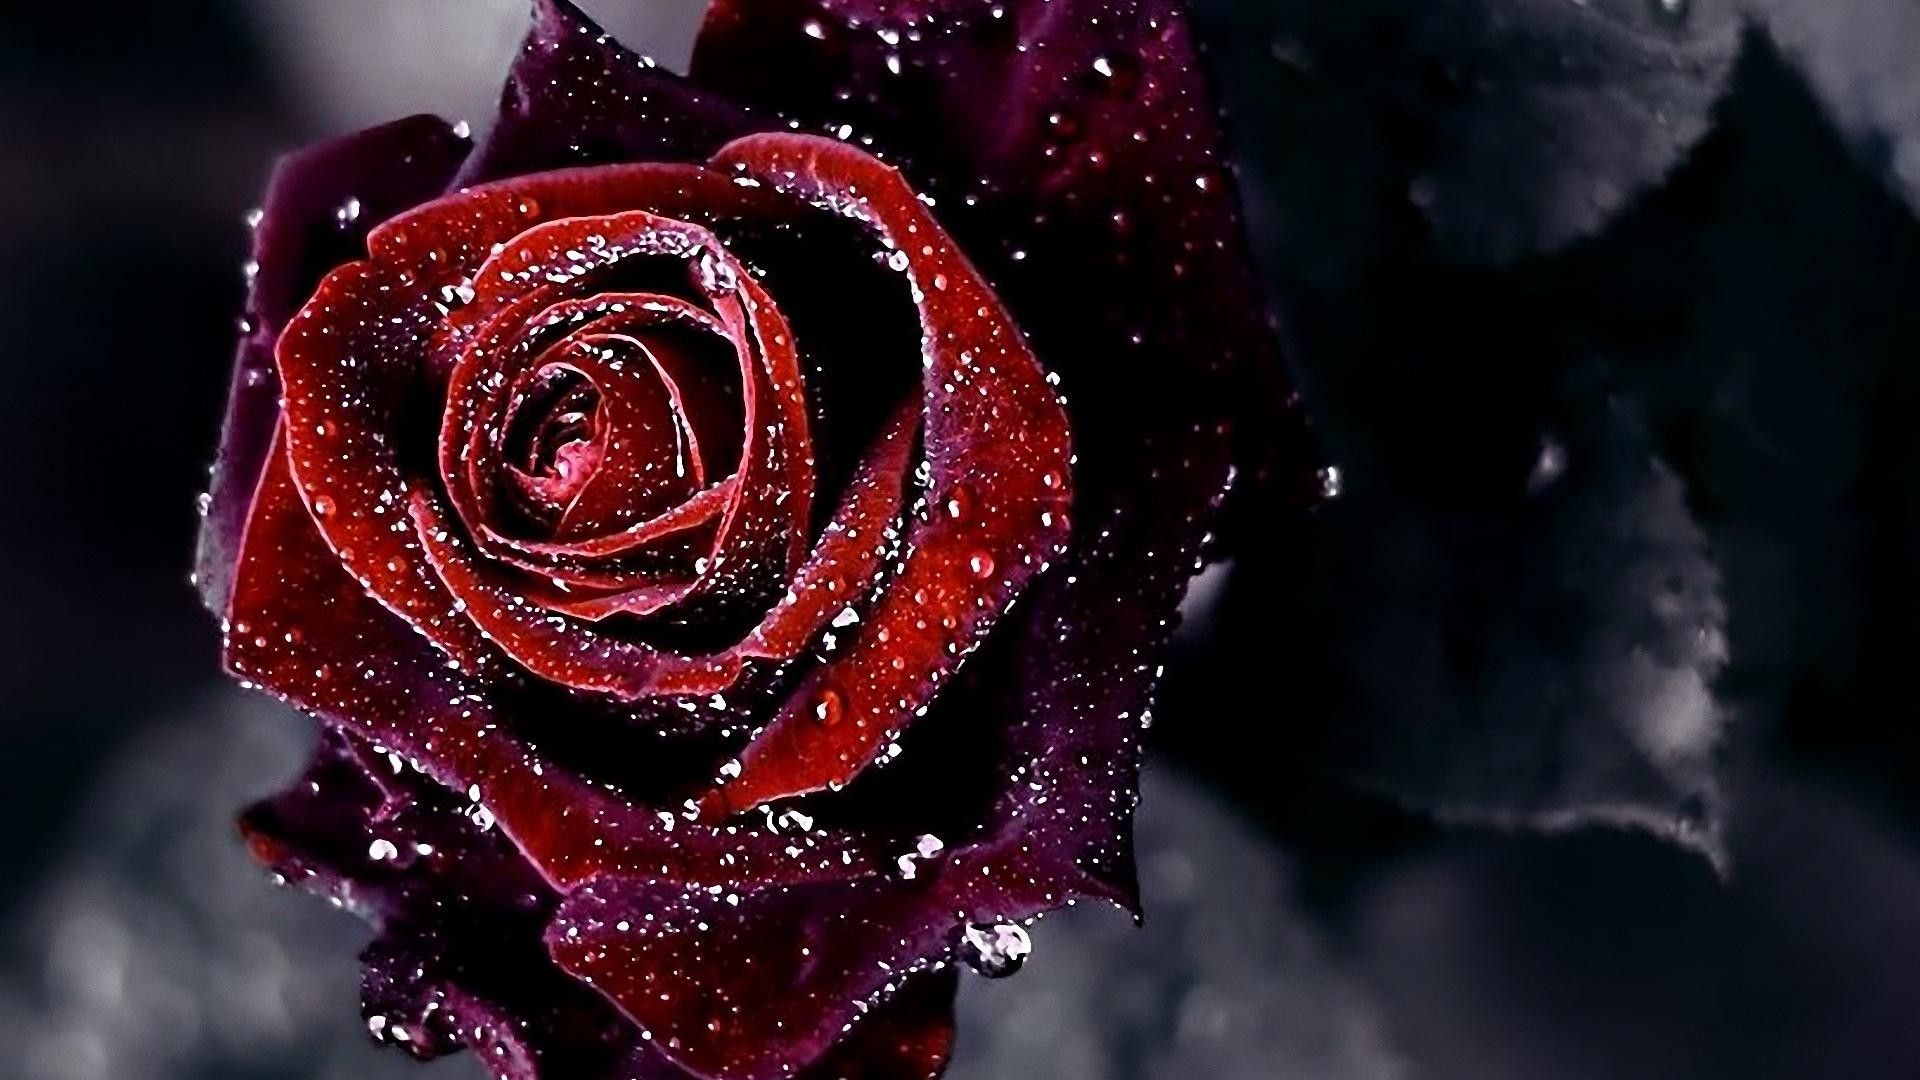 Dark Red Roses Wallpapers Top Free Dark Red Roses Backgrounds Wallpaperaccess